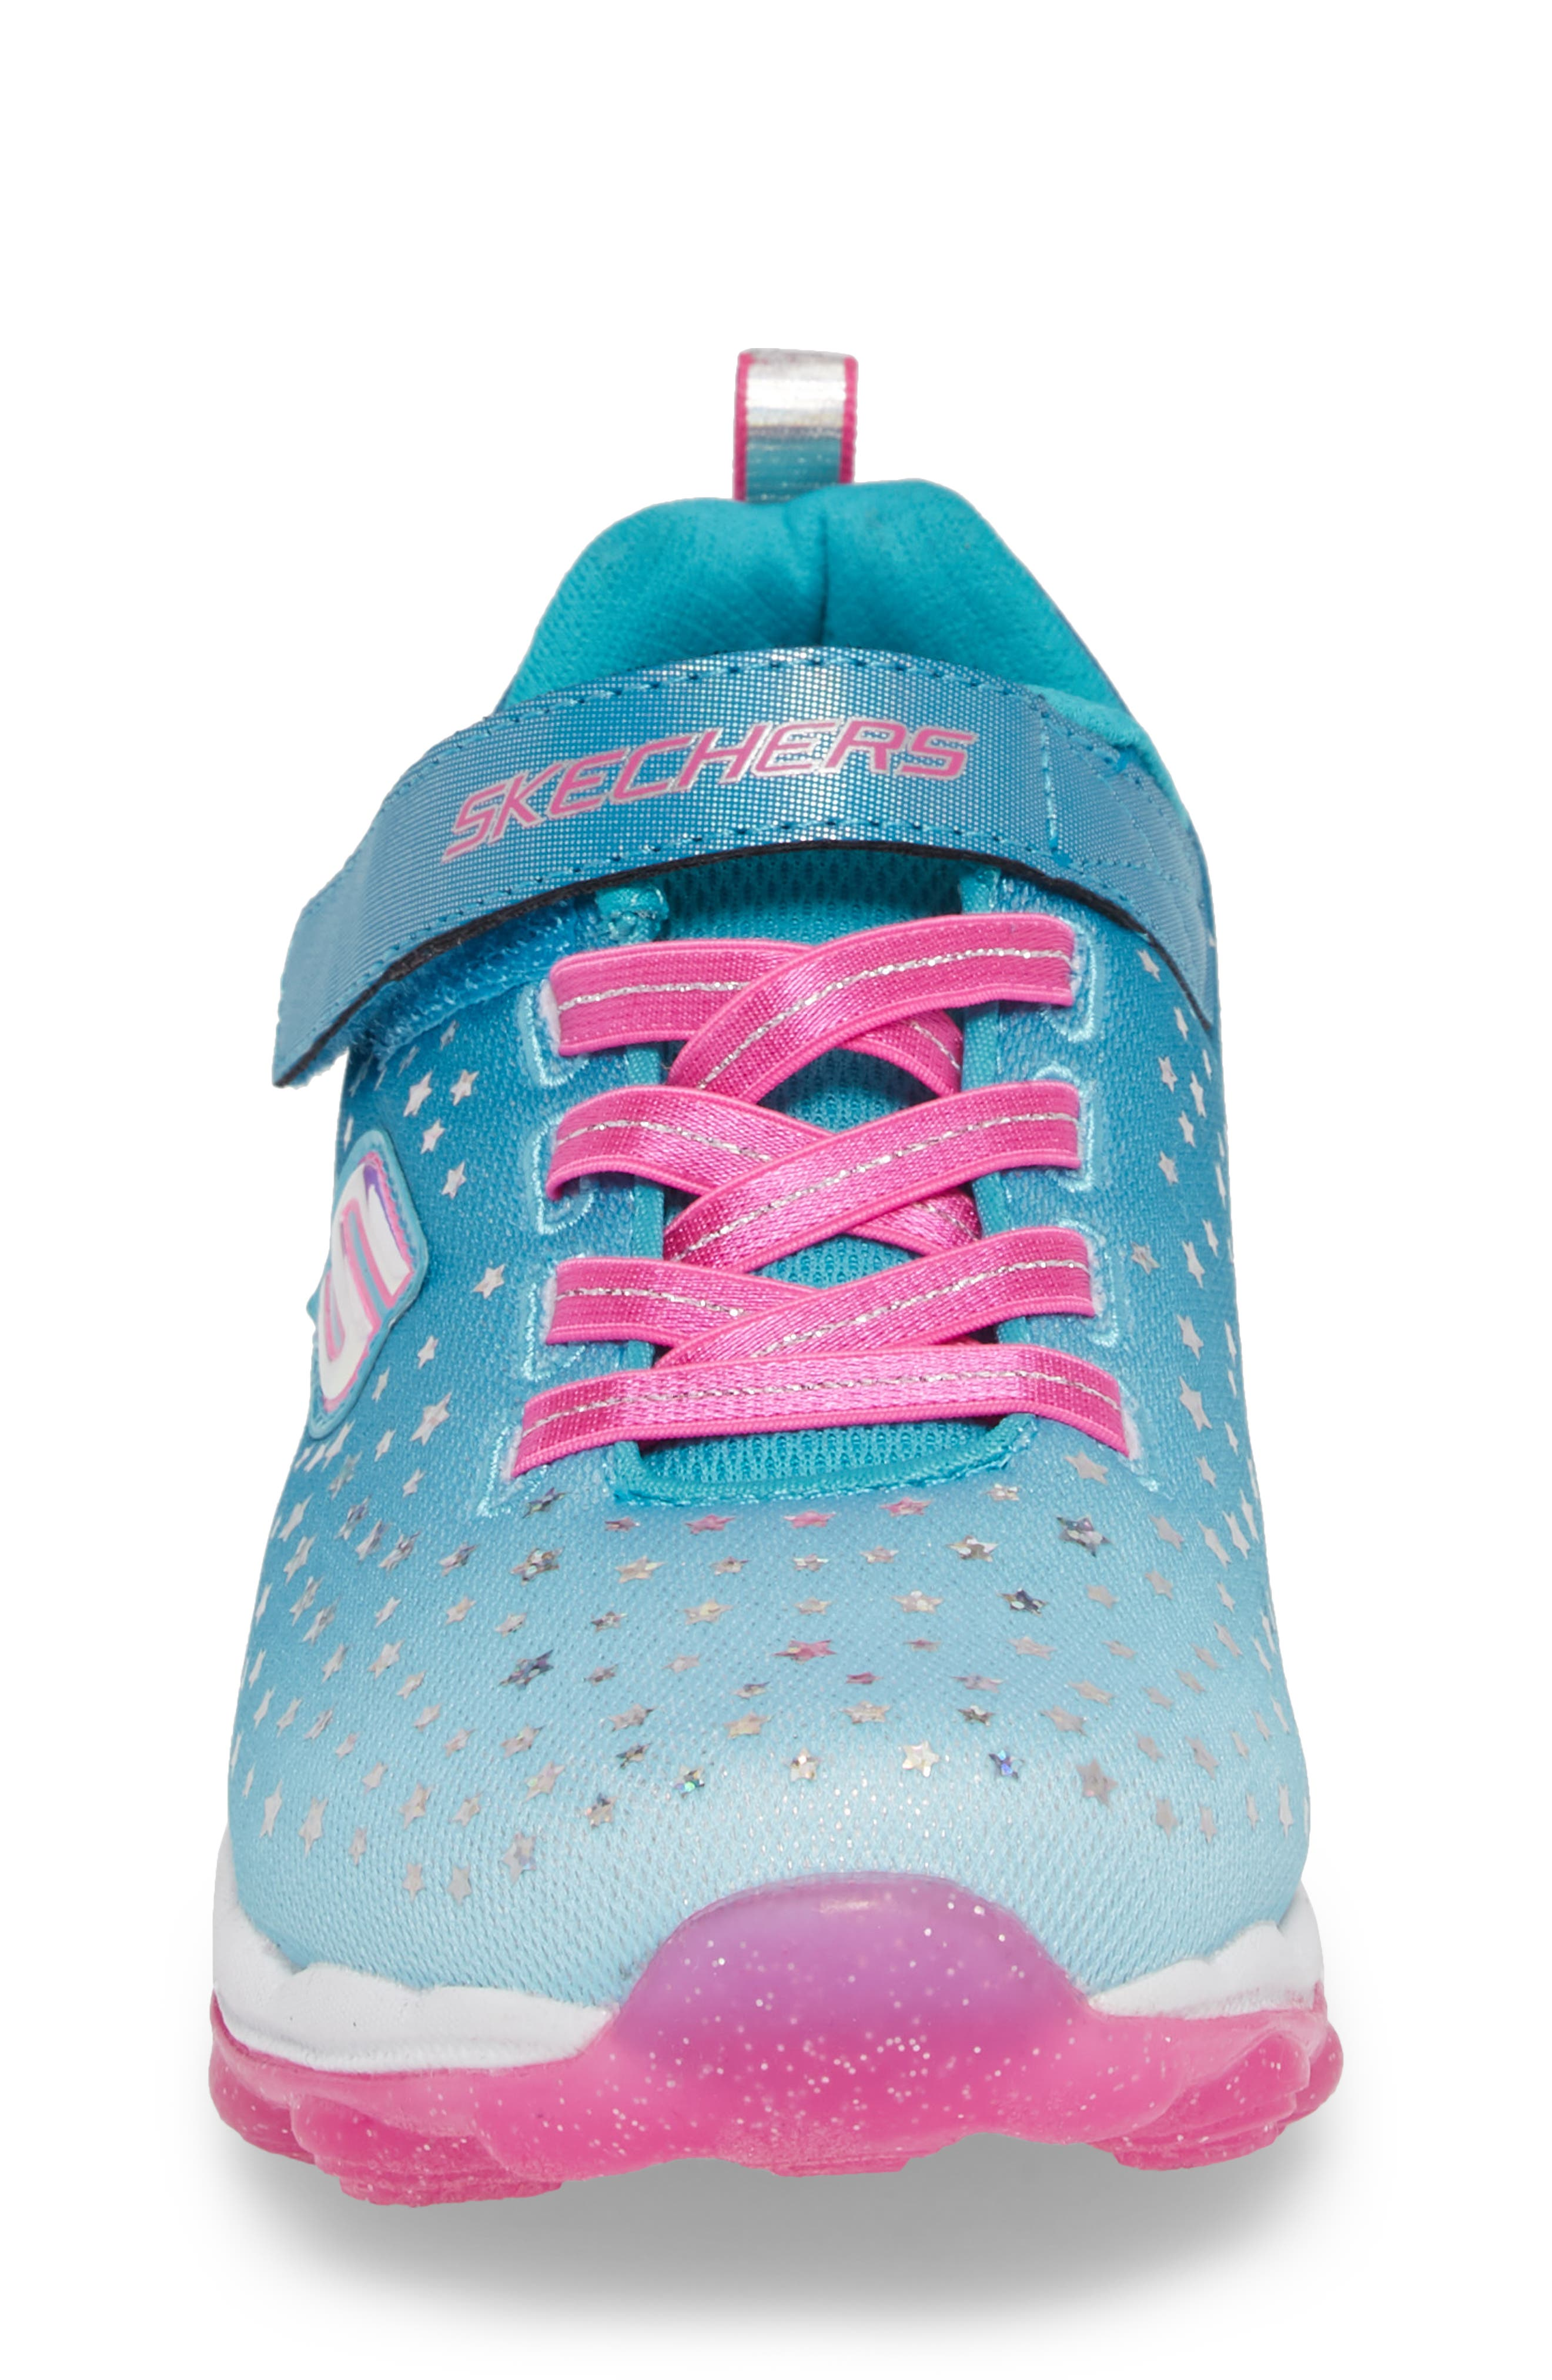 Skech-Air Ultra Glam It Up Sneaker,                             Alternate thumbnail 4, color,                             425